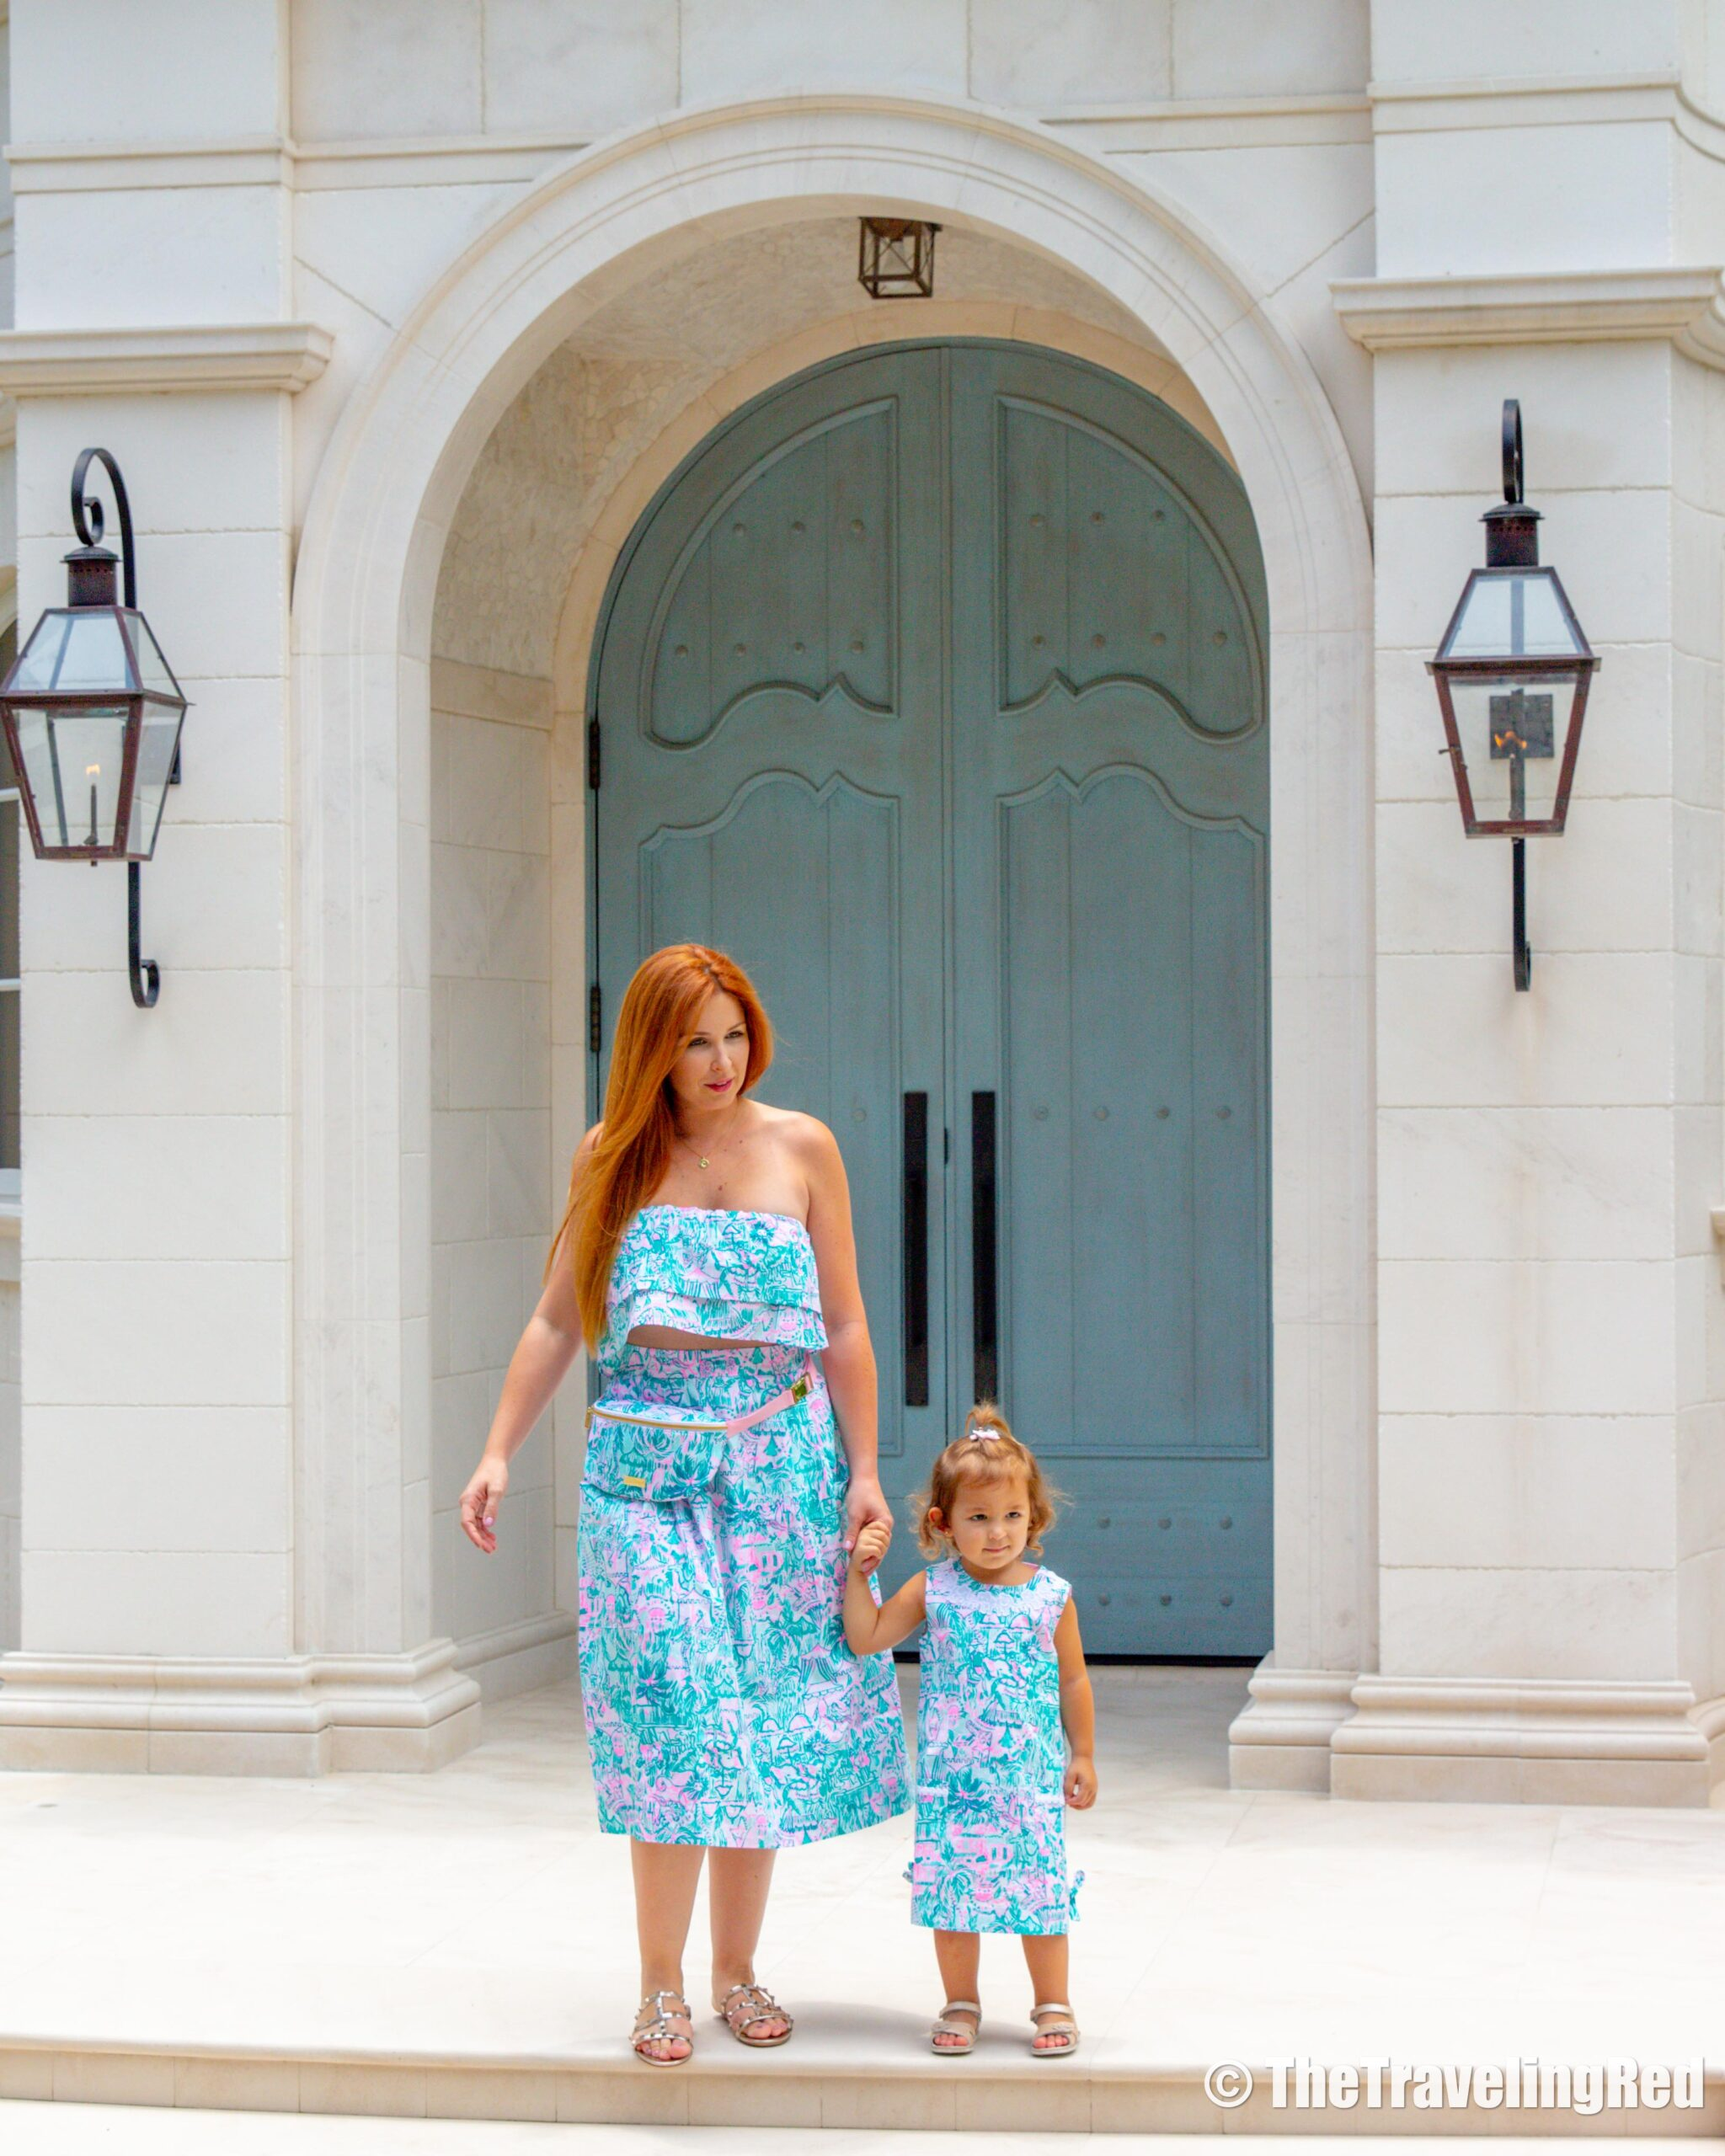 Wearing our matching mother daughter Lilly Pulitzer dresses - matching Lilly outfits are on major sale right now - check out all the matching mother daughter options | Discover the Palm Beaches | Lilly Pulitzer | Travel Tourism Board | Fashion Collaboration | Matching Mother Daughter Outfits | West Palm Beach | Riviera Beach | Jupiter | Palm Beach Gardens | Wellington | Lake Worth | Boca Raton |Boynton Beach | Delray Beach | Lion Country Safari | High Tea at the Chesterfield Palm Beach Hotel | A Day in the Life of an Influencer or Content Creator | What Do Bloggers Do | Film Crew | Behind the Scenes | The Brazilian Court Hotel | PGA National Resort and Spa | Amanda Perna from Project Runway | Flagler Museum | Eau Palm Beach | Guanabanas | Beach Paddleboard Yoga | #socialmedia #travelblogger #tourismboard #collaboration #influencer #fashionblogger #palmbeach #lillypulitzer